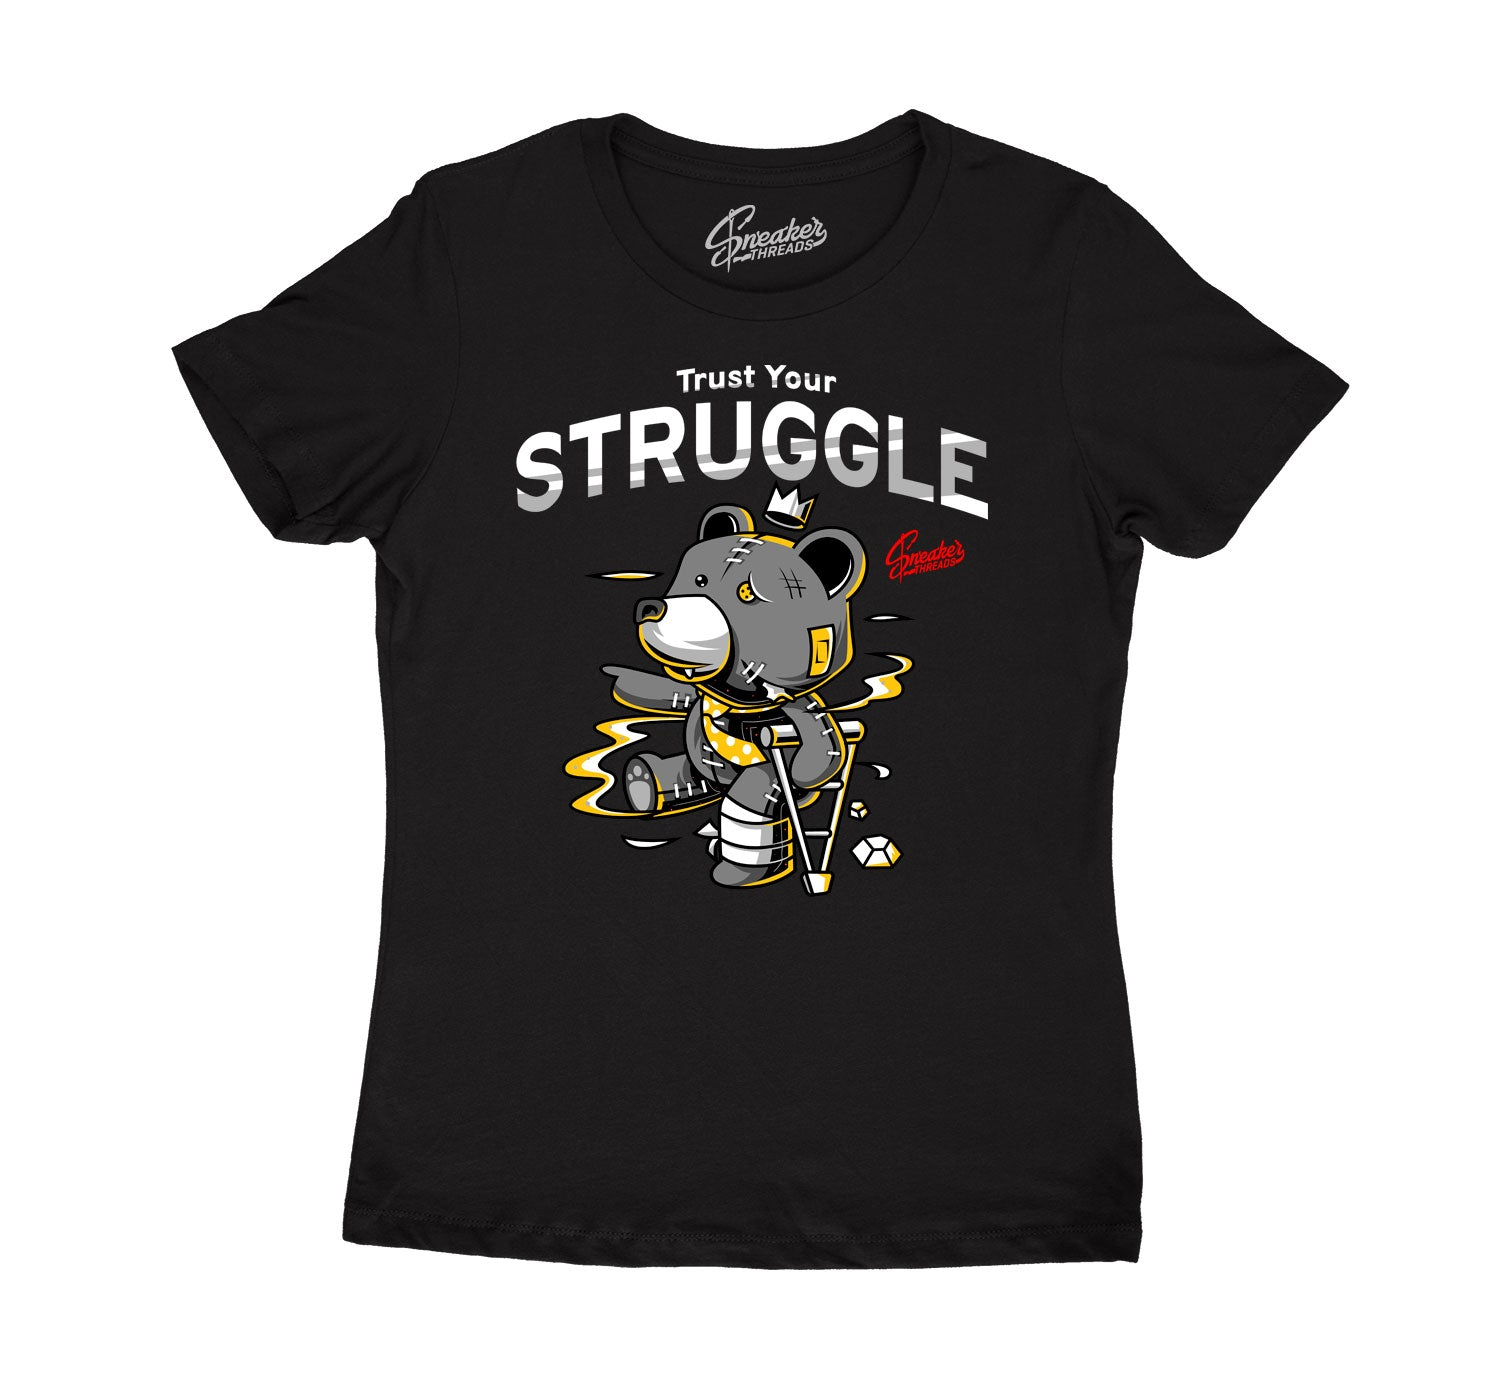 Womens  Cool Grey 3 Shirt - Trust Your Struggle - Black